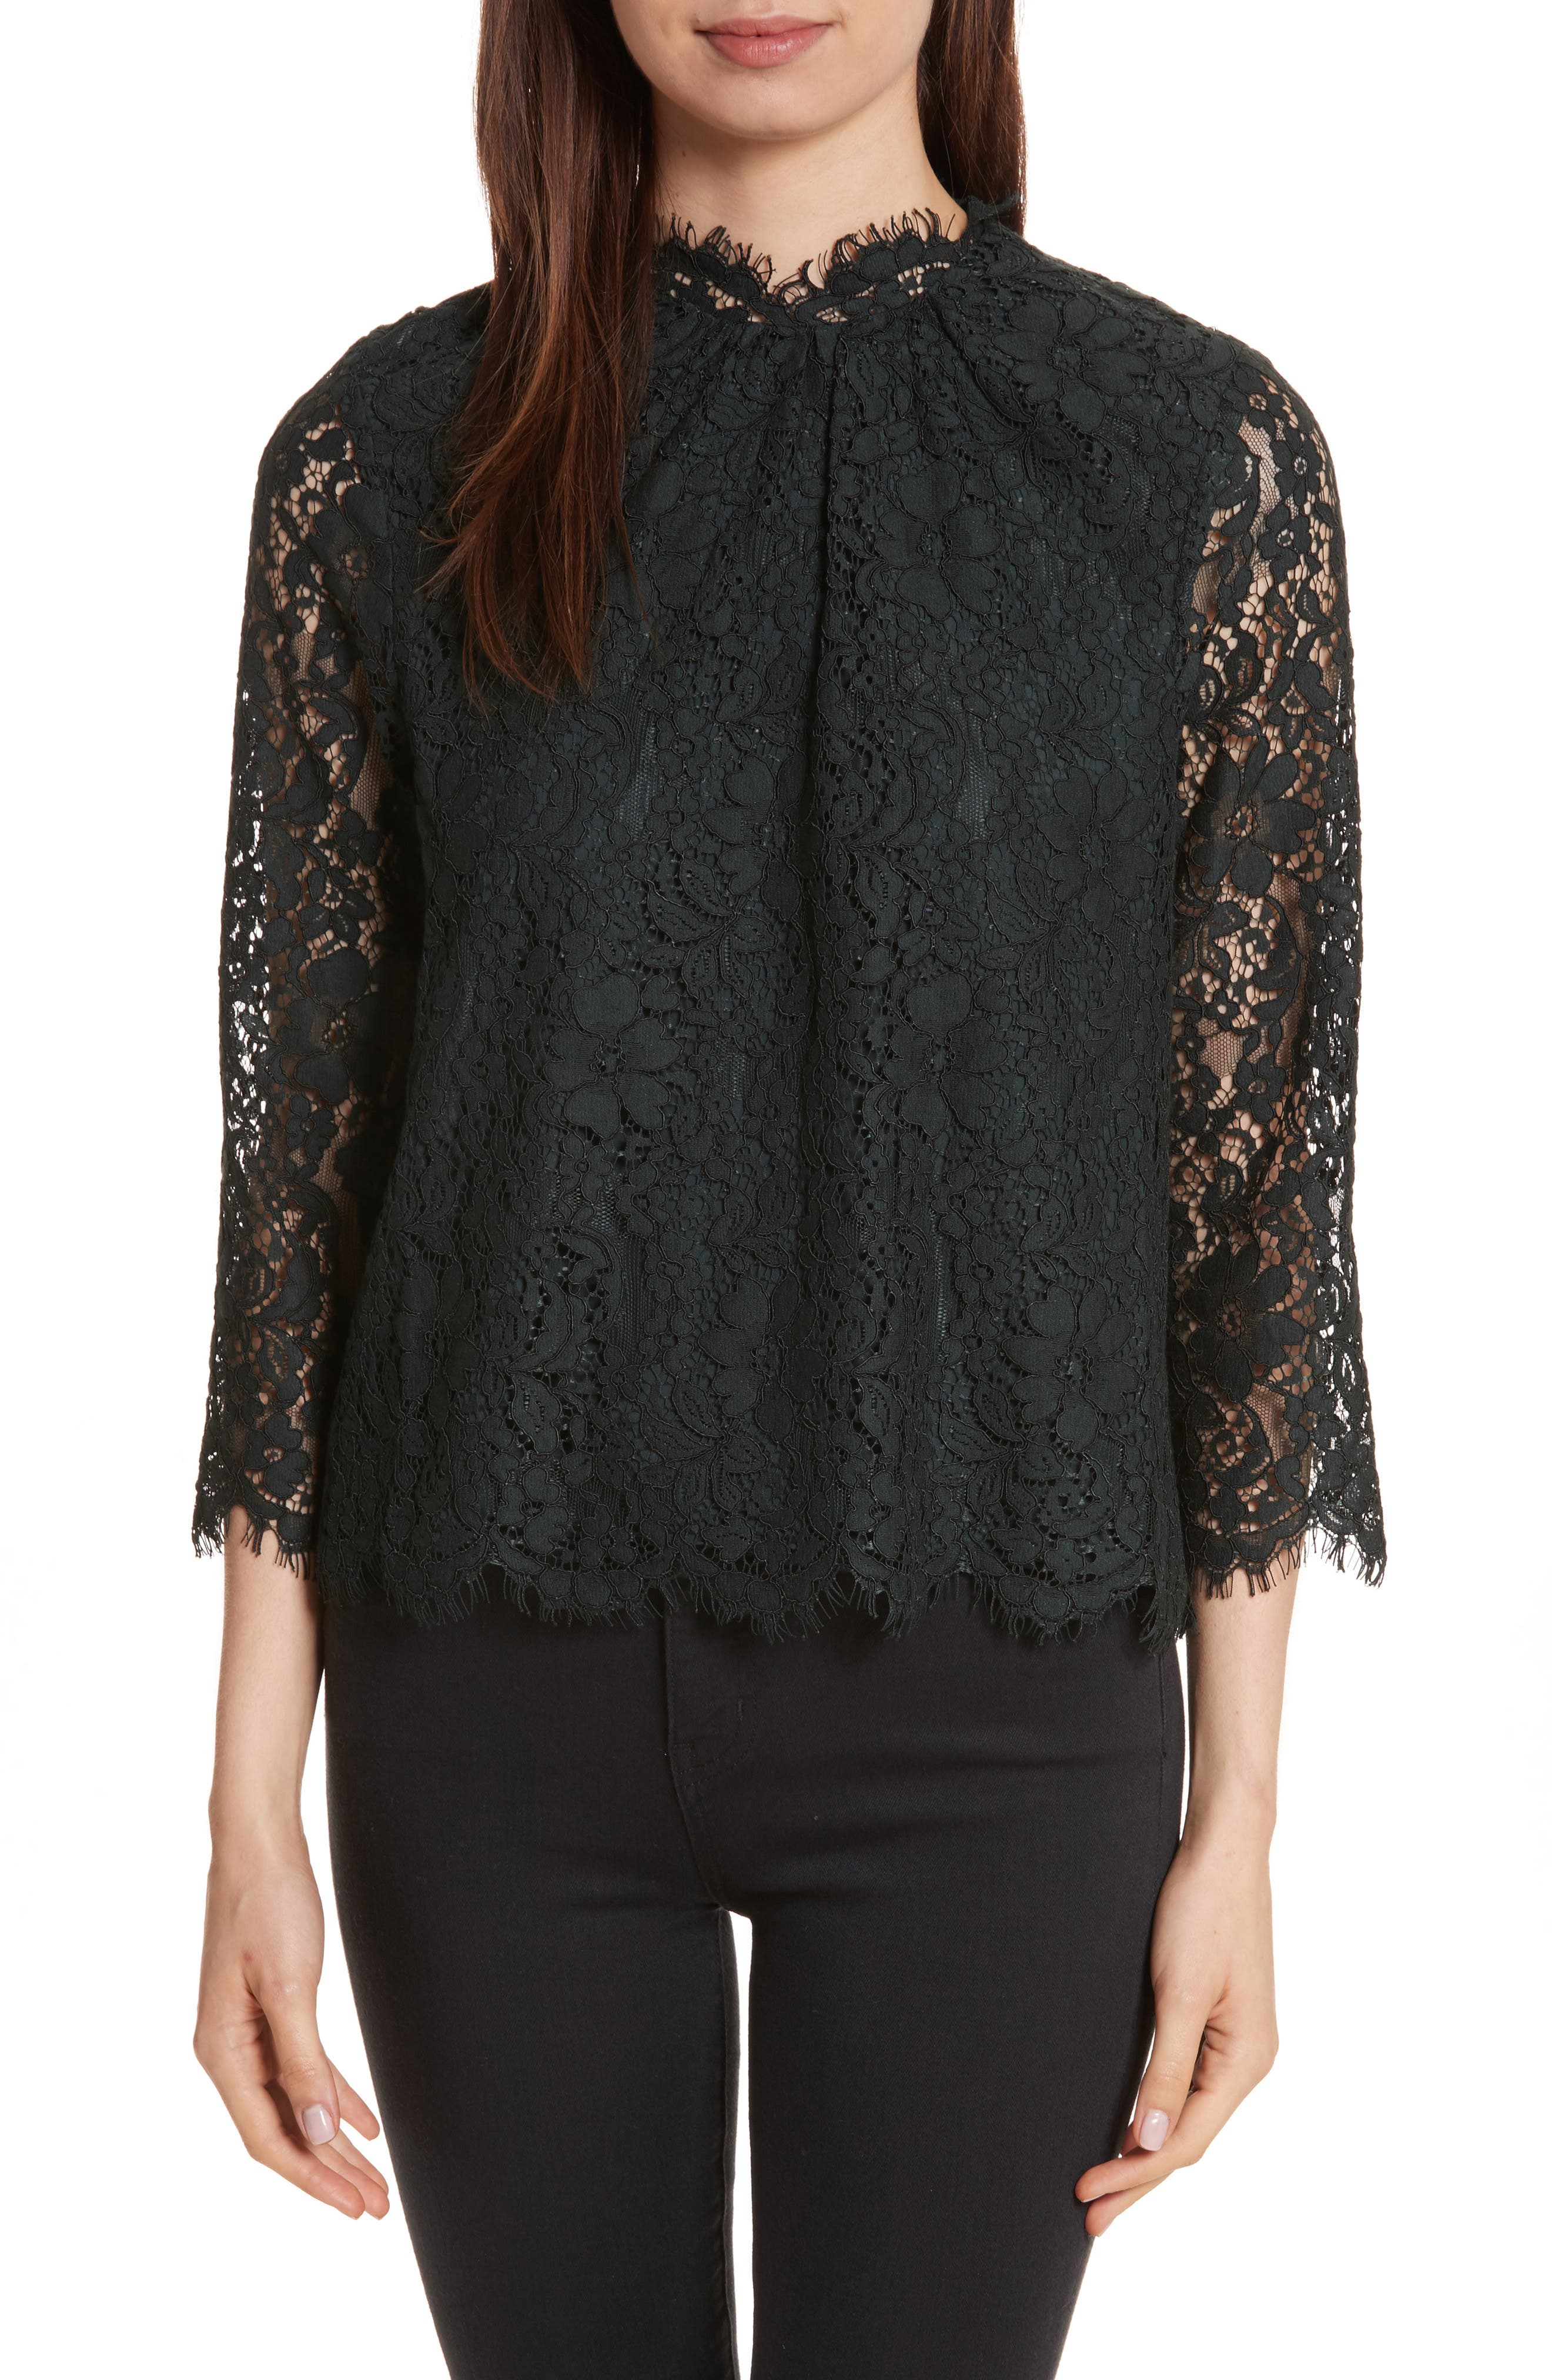 Joie Frayda Sheer Sleeve Lace Top